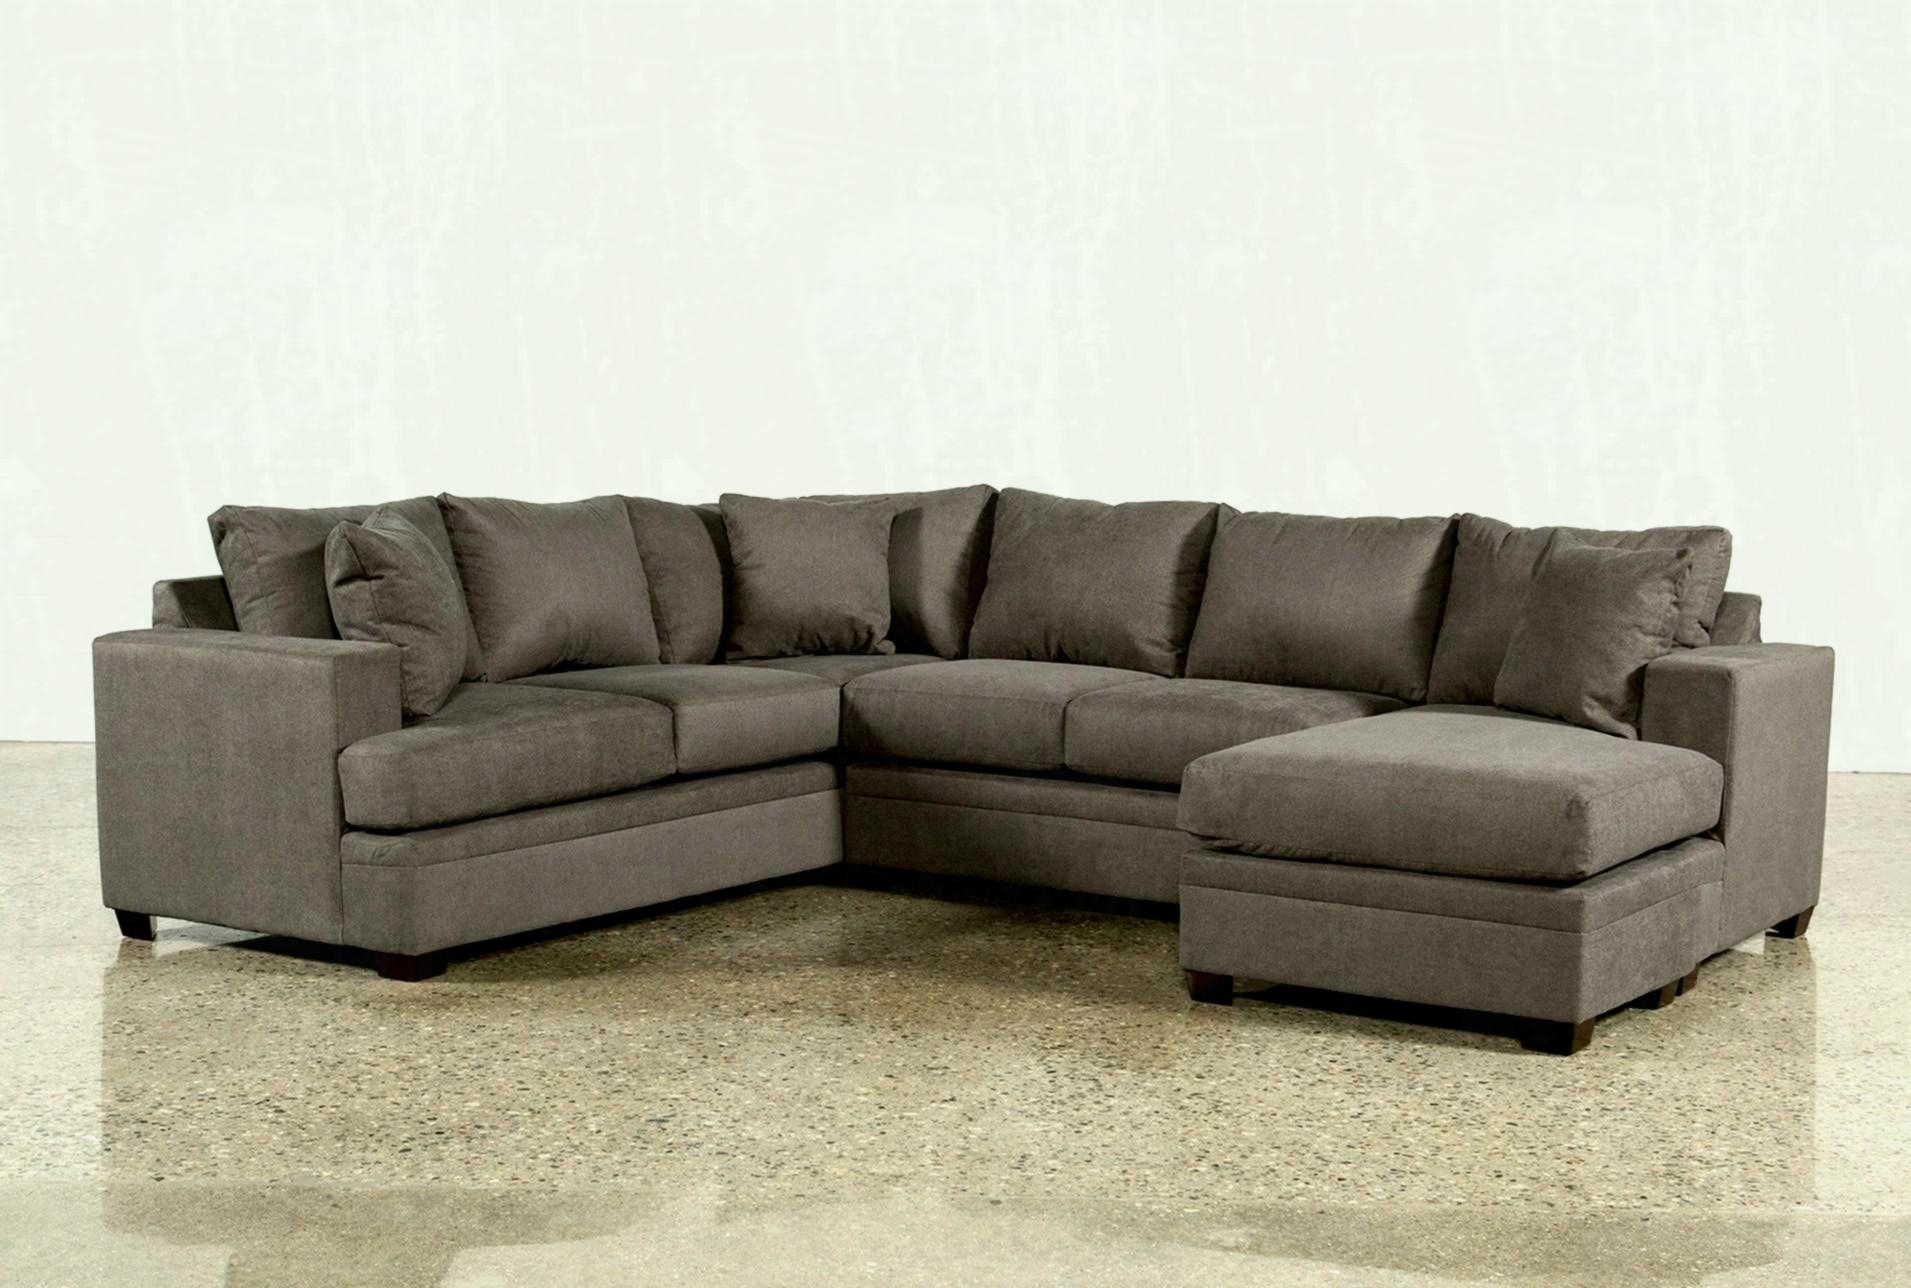 Added To Cart Kerri Piece Sectional W Raf Chaise Living Spaces in Aquarius Dark Grey 2 Piece Sectionals With Laf Chaise (Image 6 of 30)